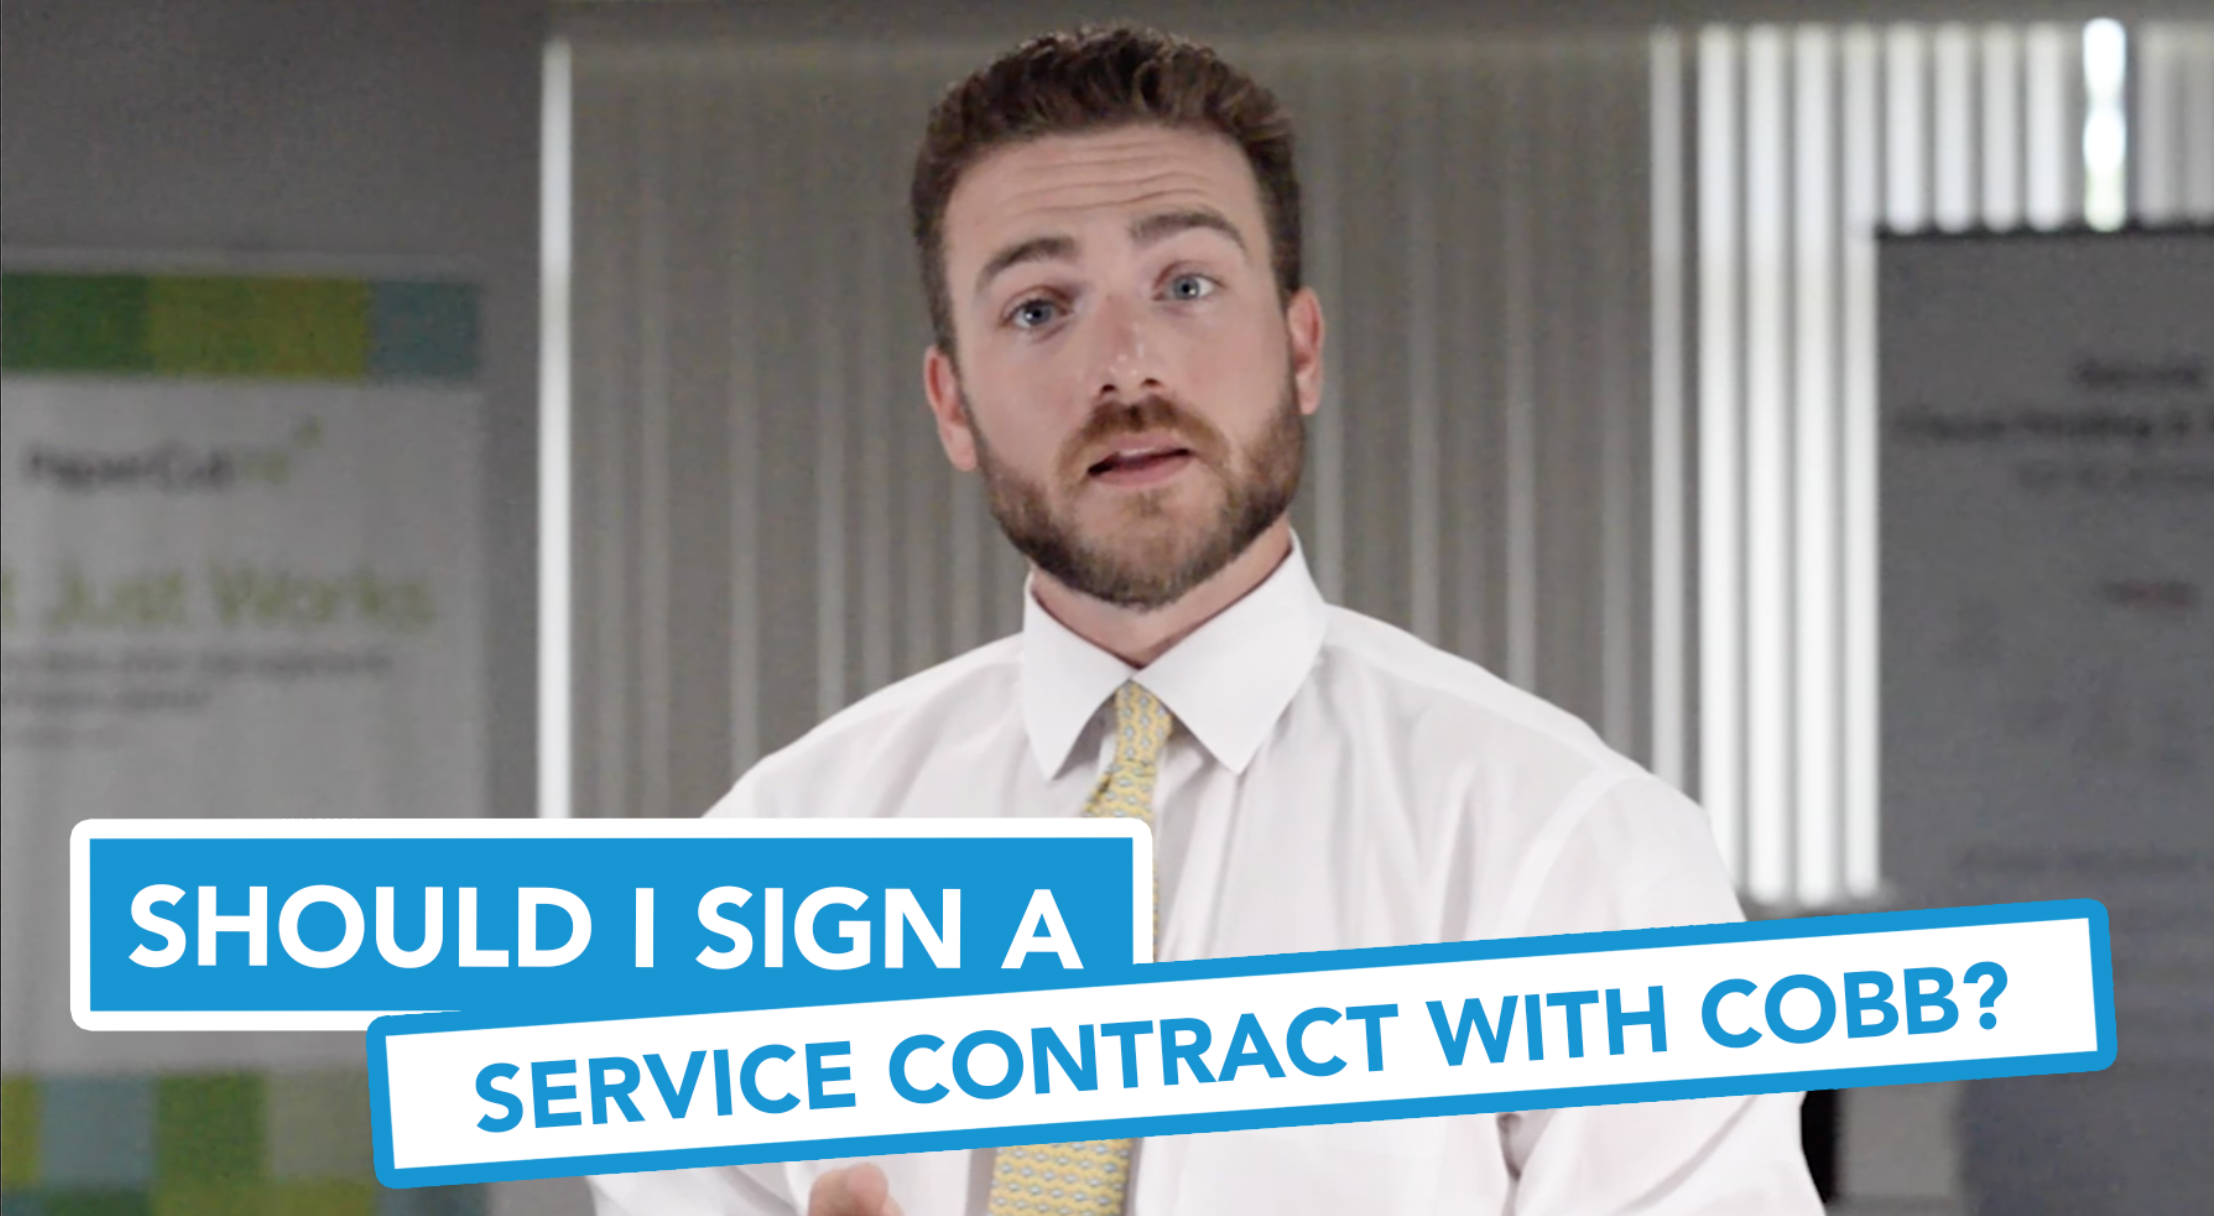 Should I Sign a Service Contract With Cobb?